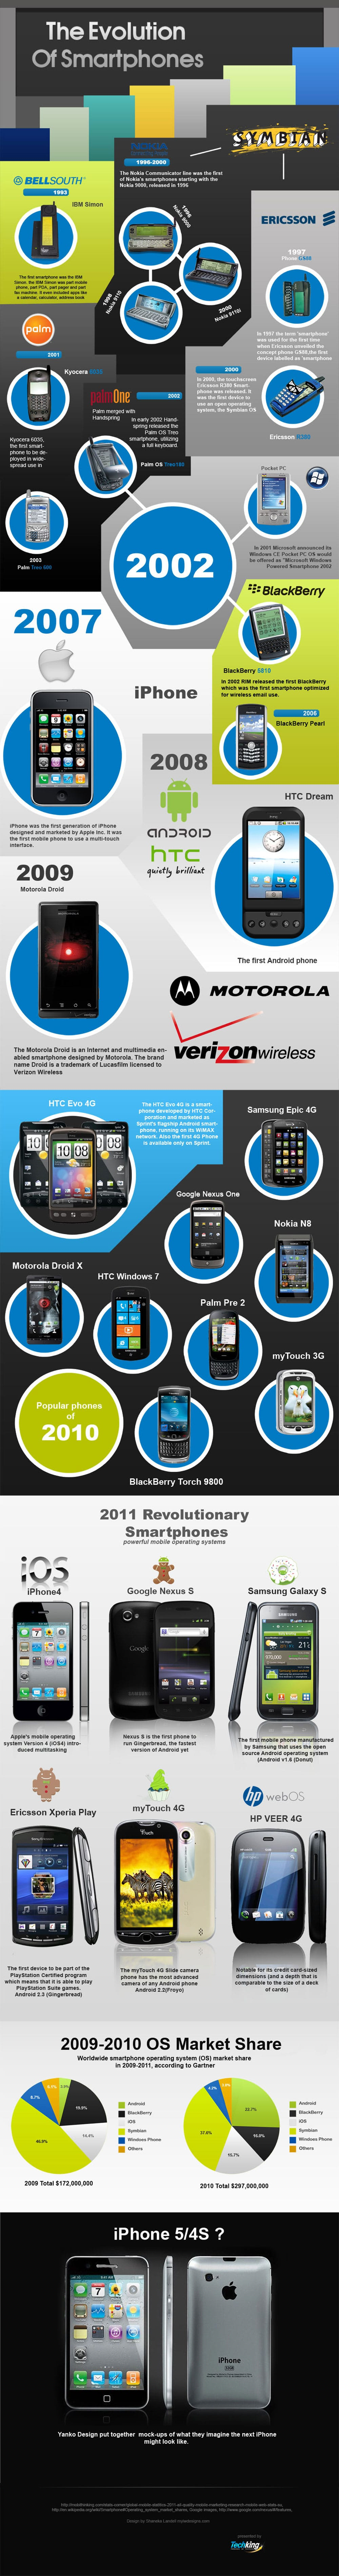 The Evolution Of Smartphones [Infographic]